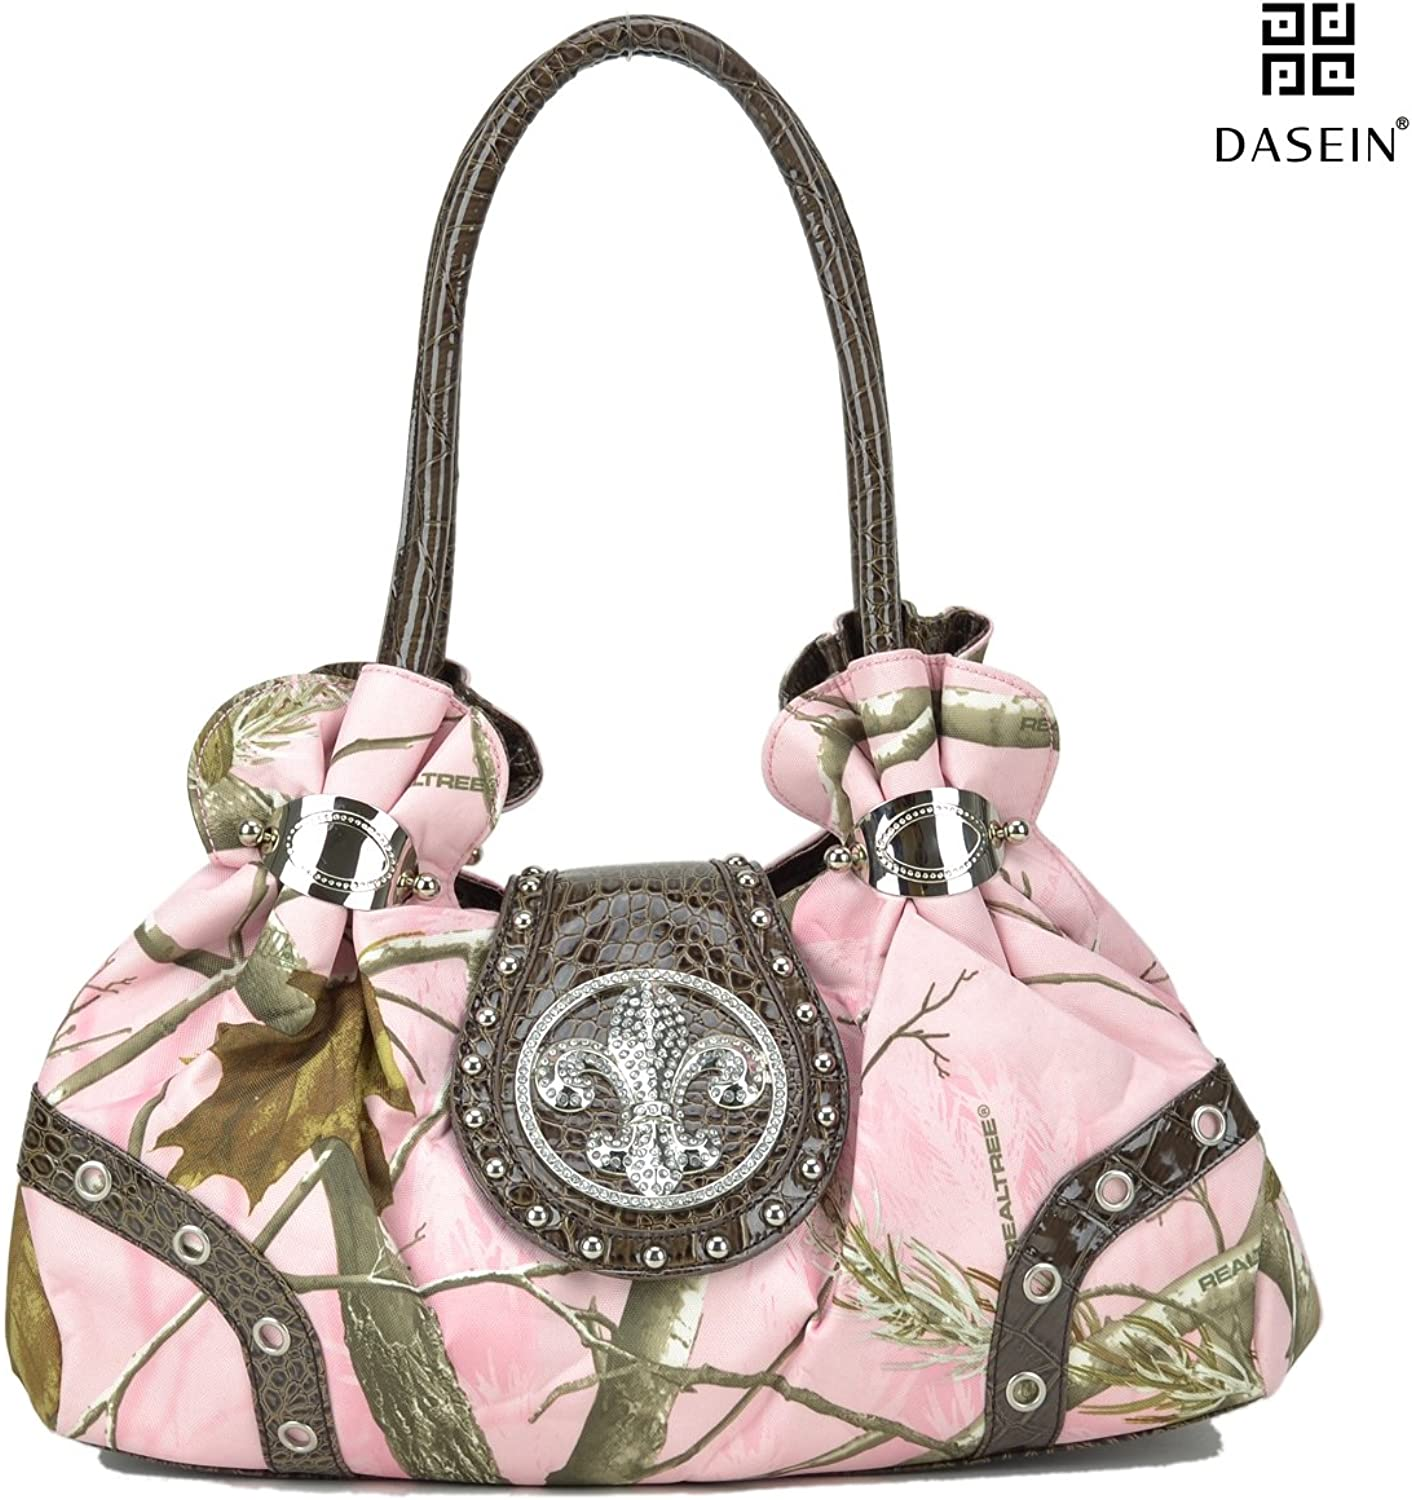 Dasein in Realtree Camouflage Purse Studded Shoulder Bag with Rhinestone